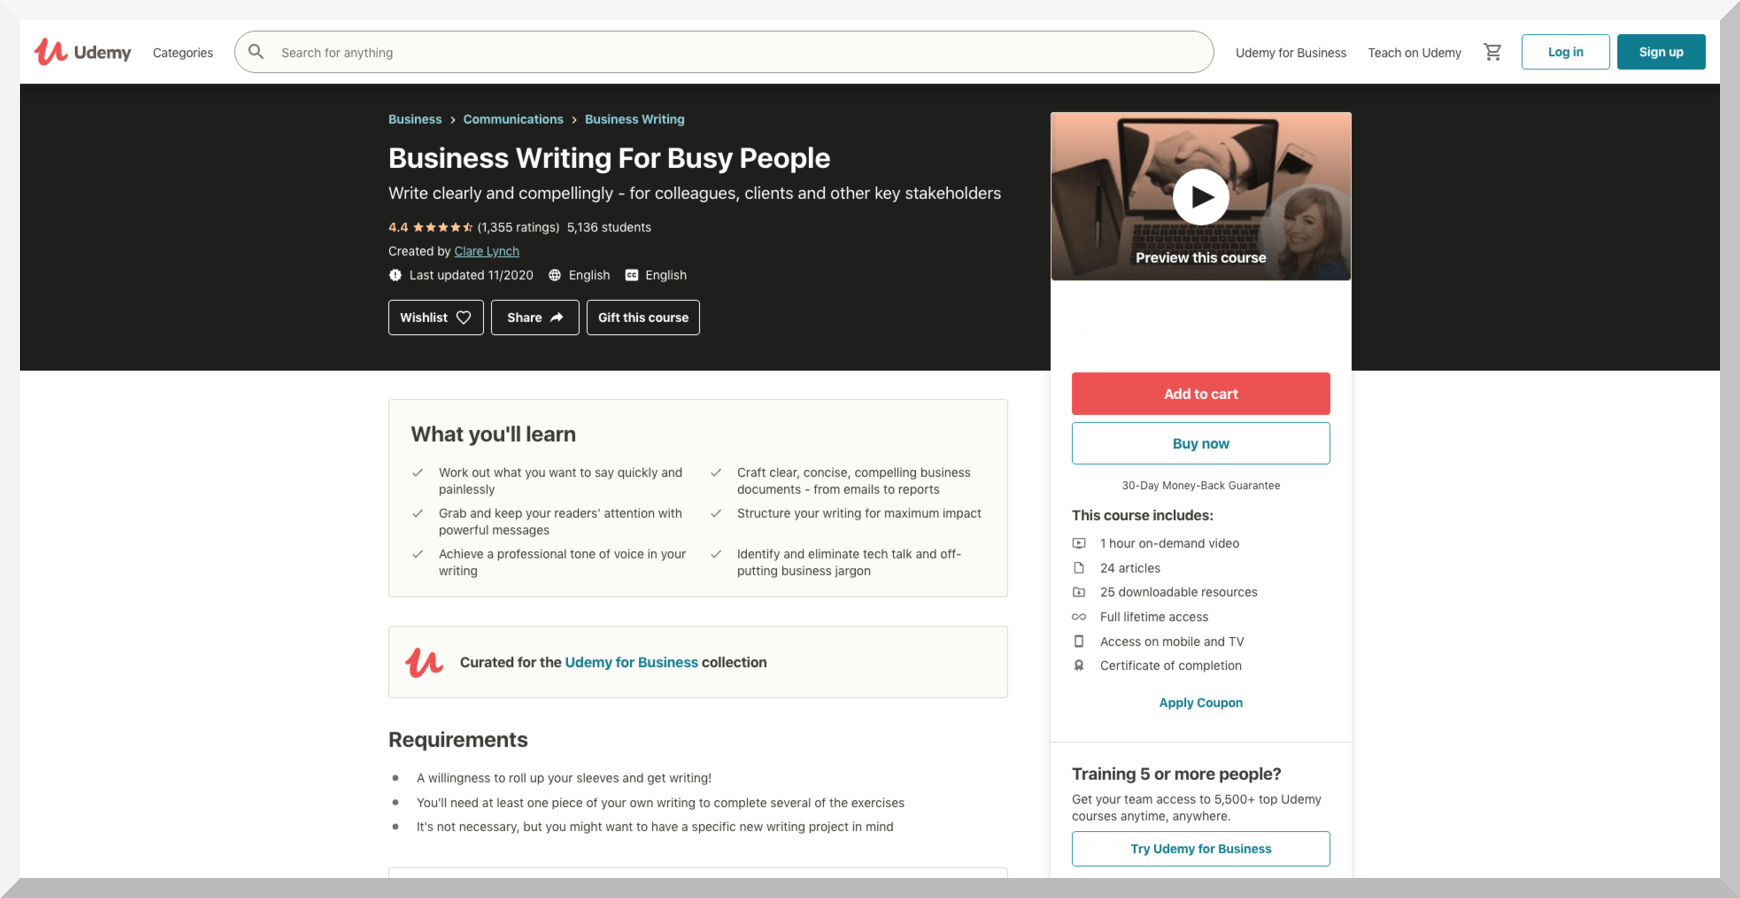 Business Writing for Busy People – Udemy